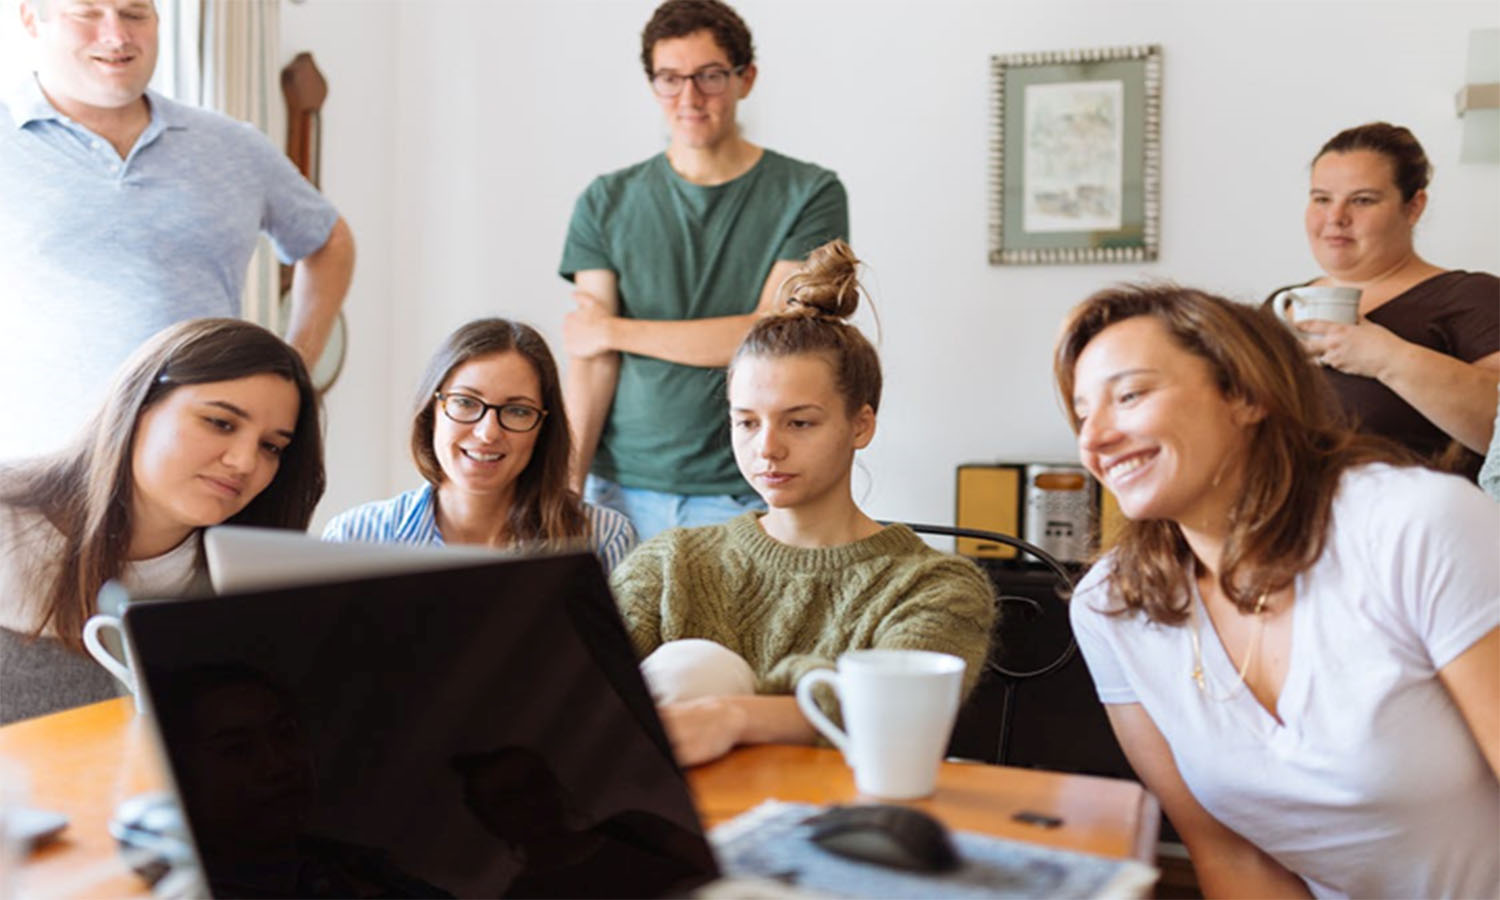 How to Become a Leader in the Student Community